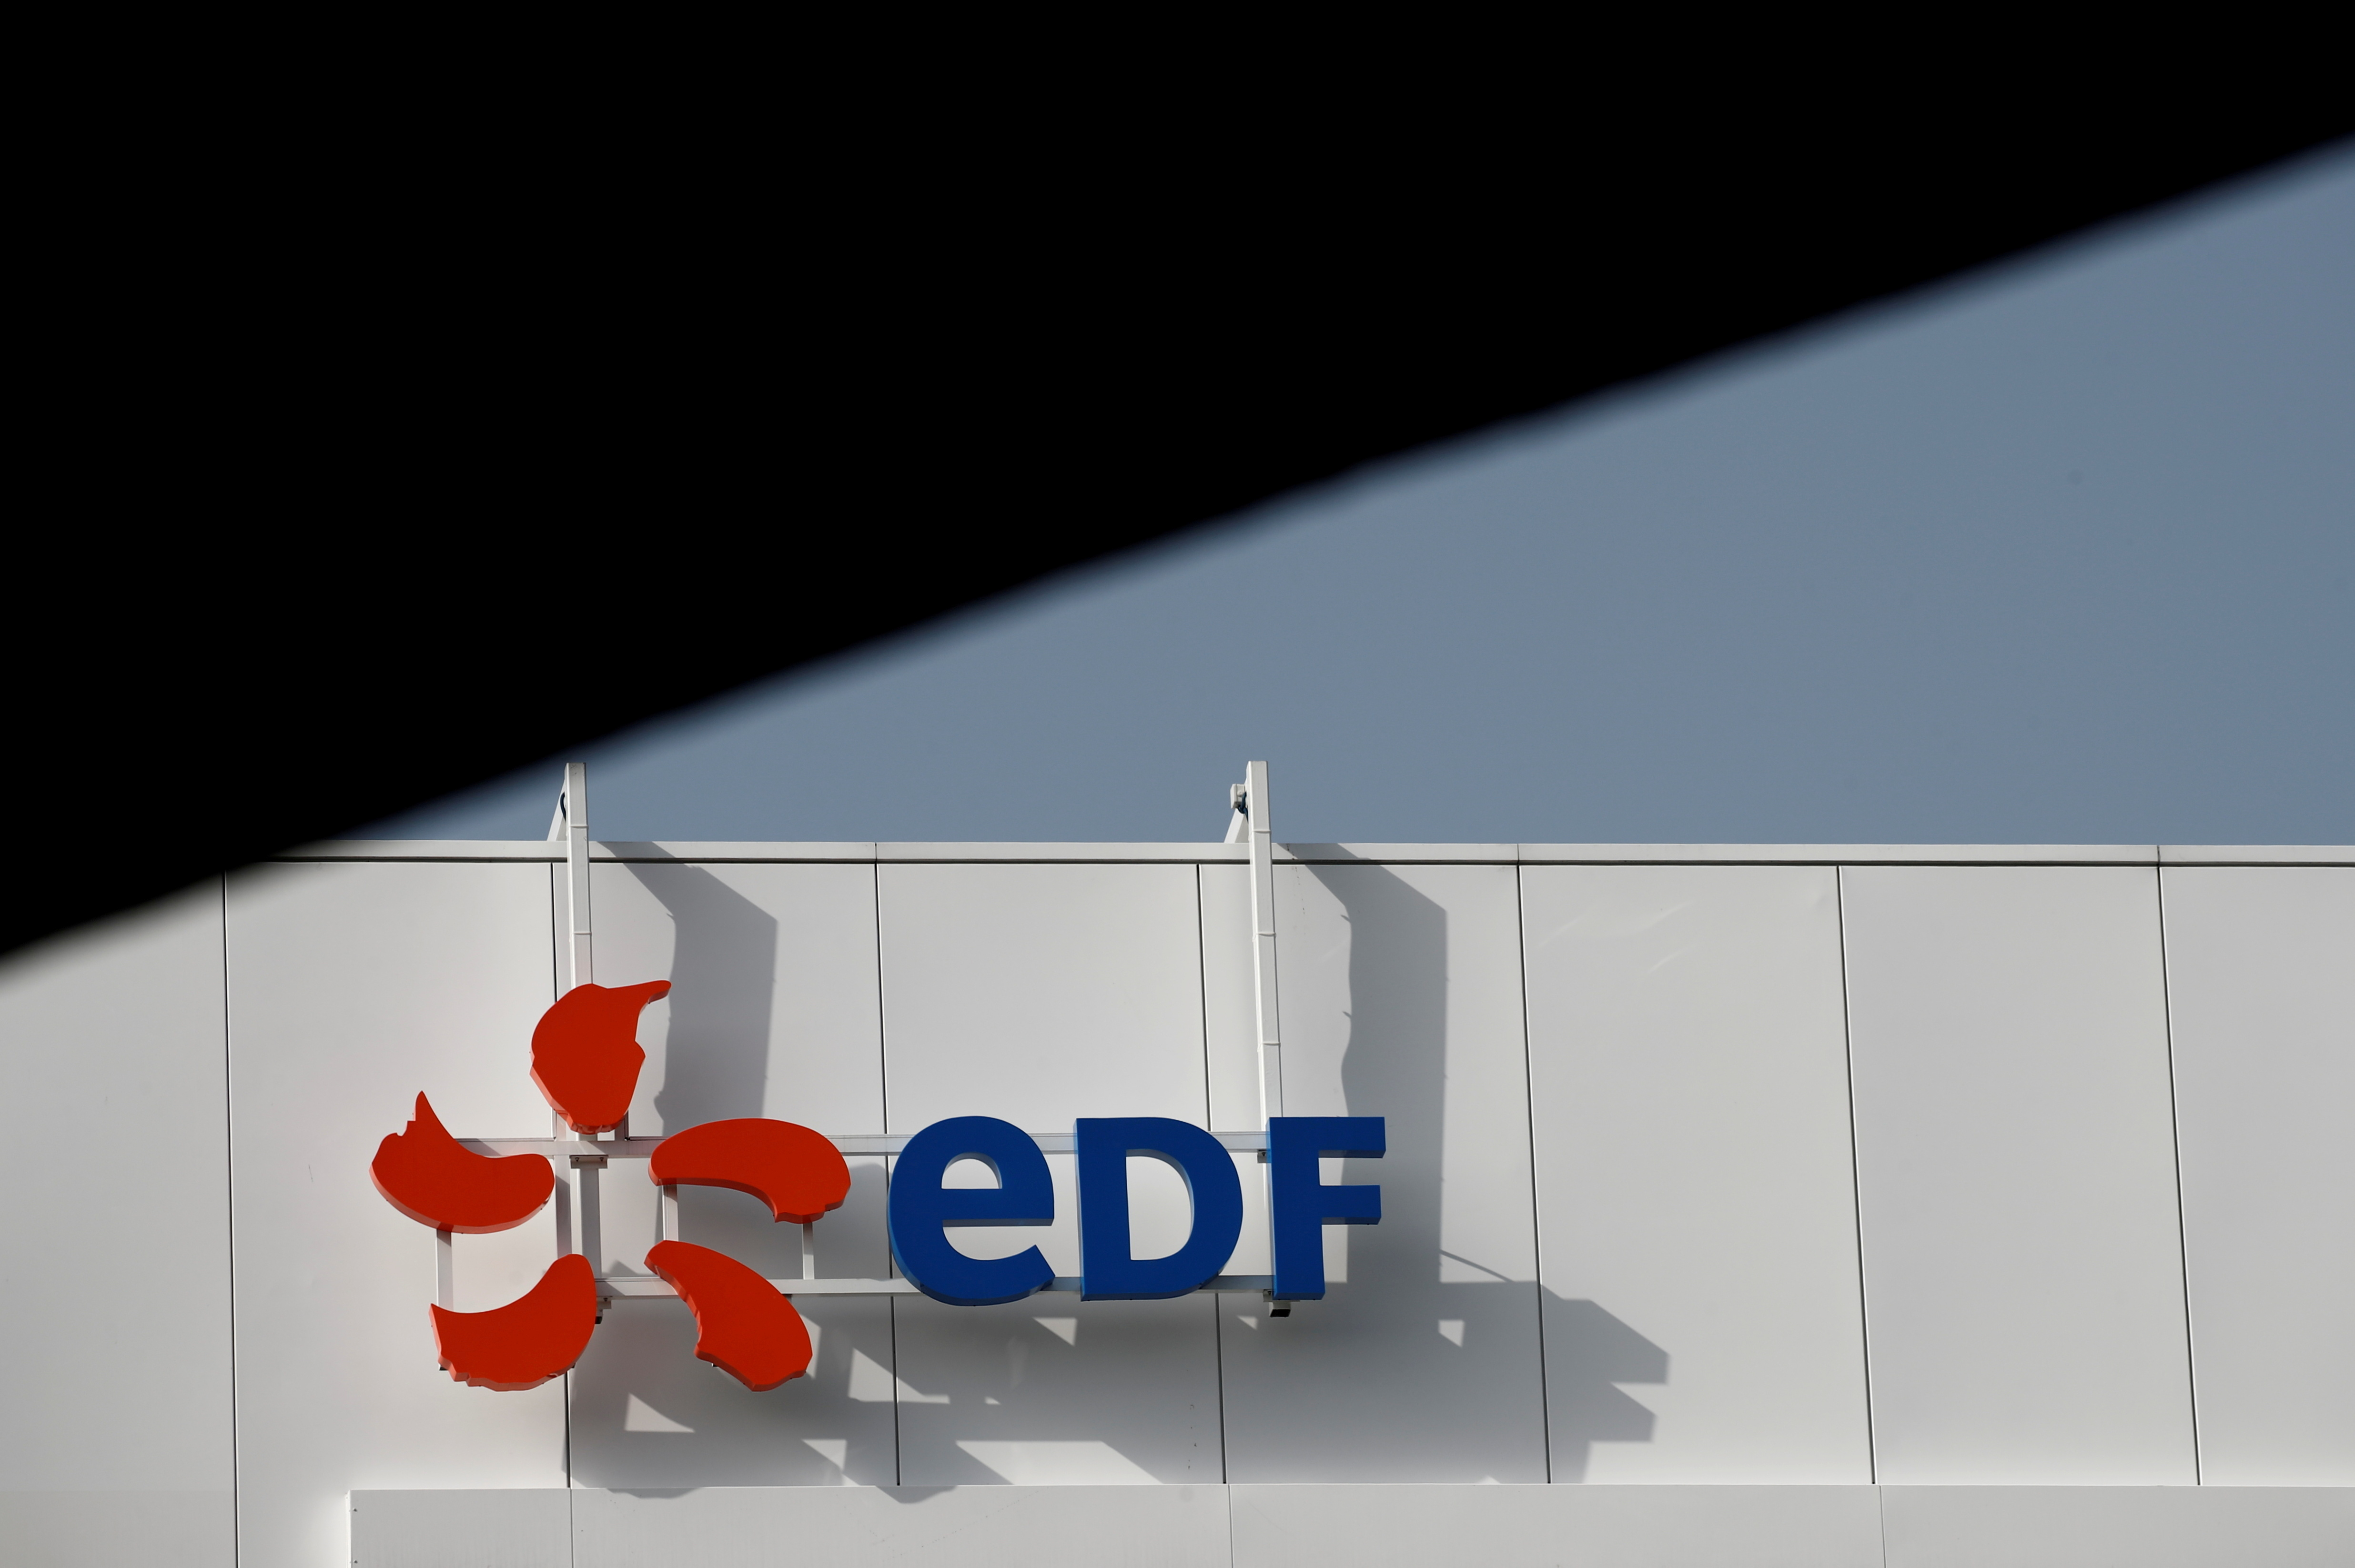 The company logo for Electricite de France (EDF) is seen in Paris, France, March 2, 2021. REUTERS/Benoit Tessier/File Photo